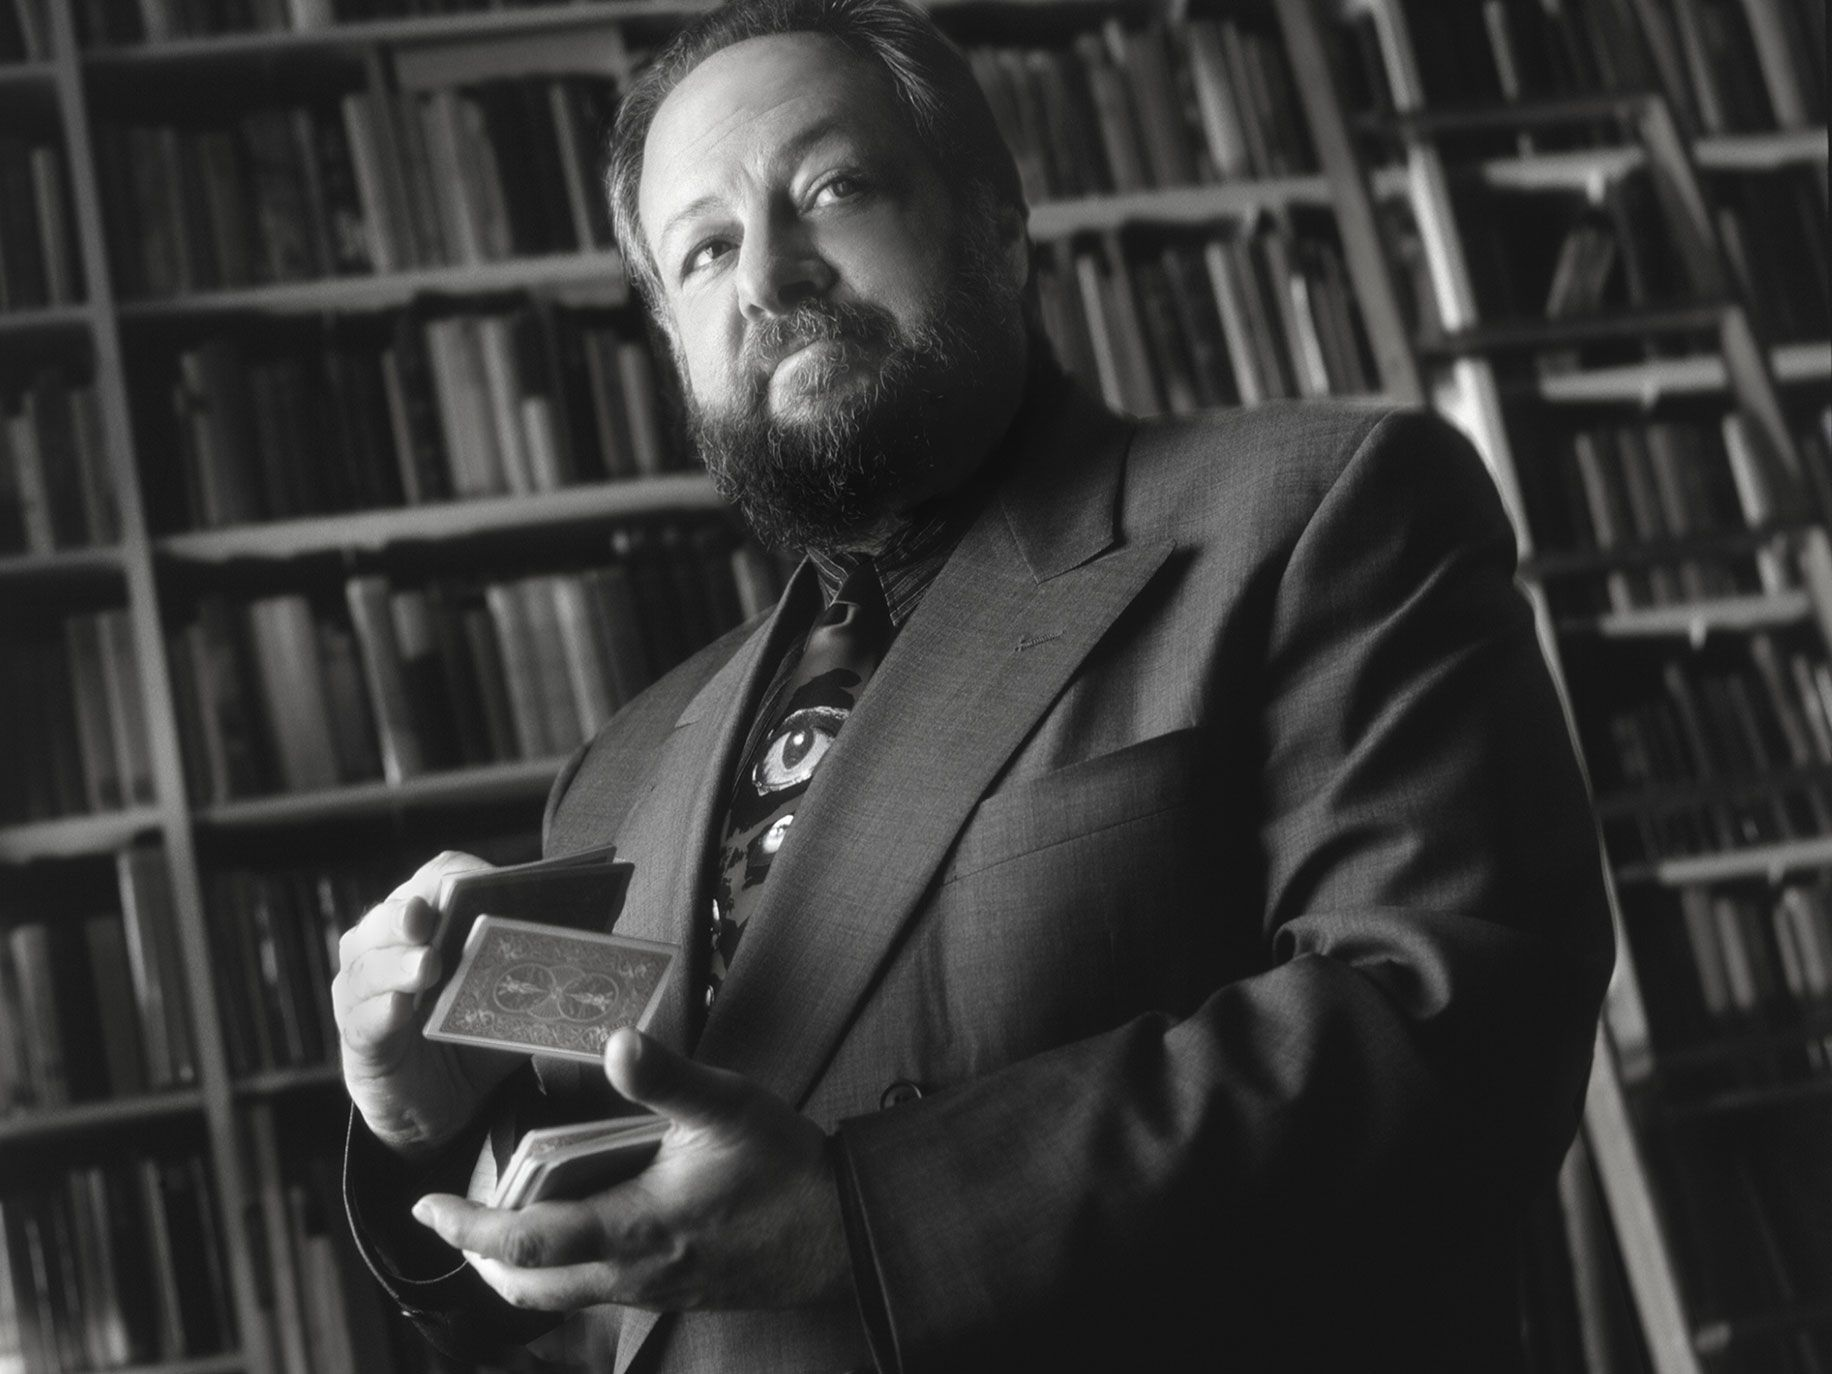 Magician, actor, writer, Ricky Jay shot at his favorite bookstore in Los Angeles in 1994.